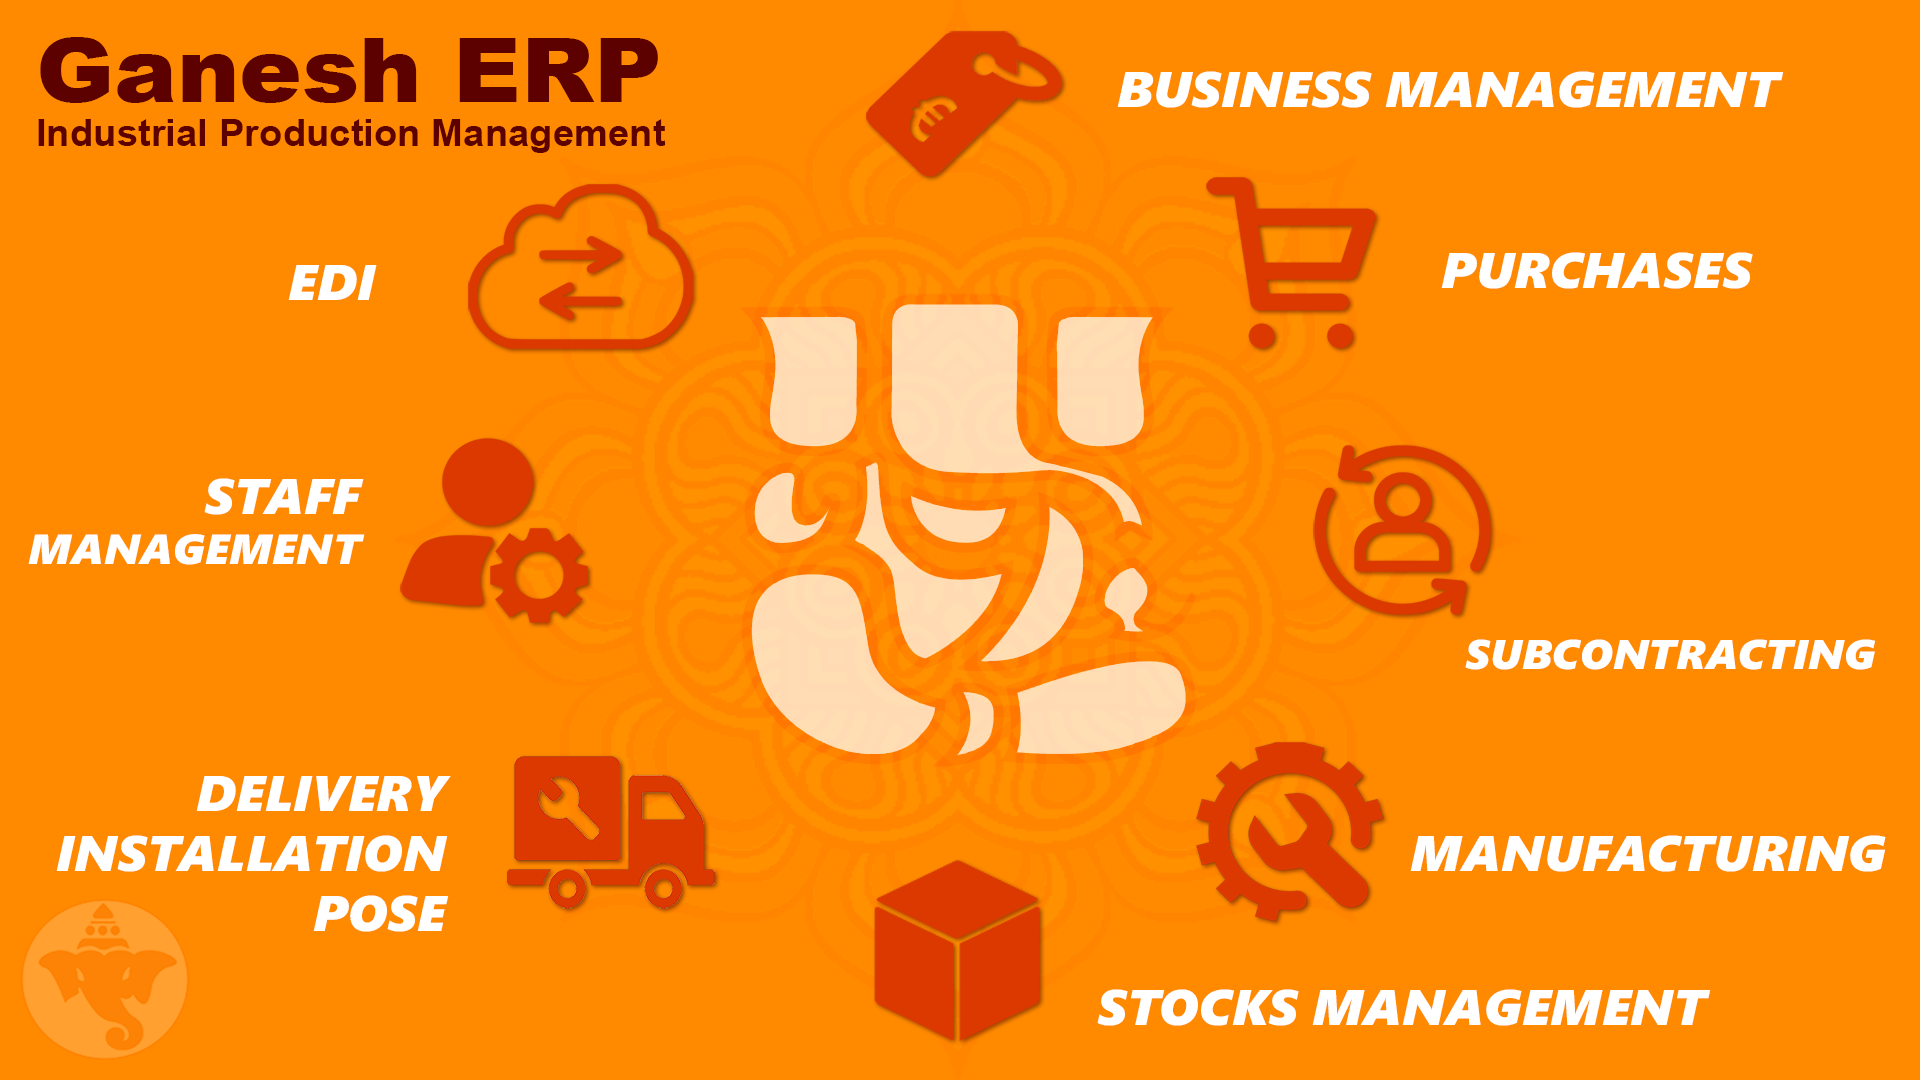 Ganesh ERP - Industrial Production Management Software